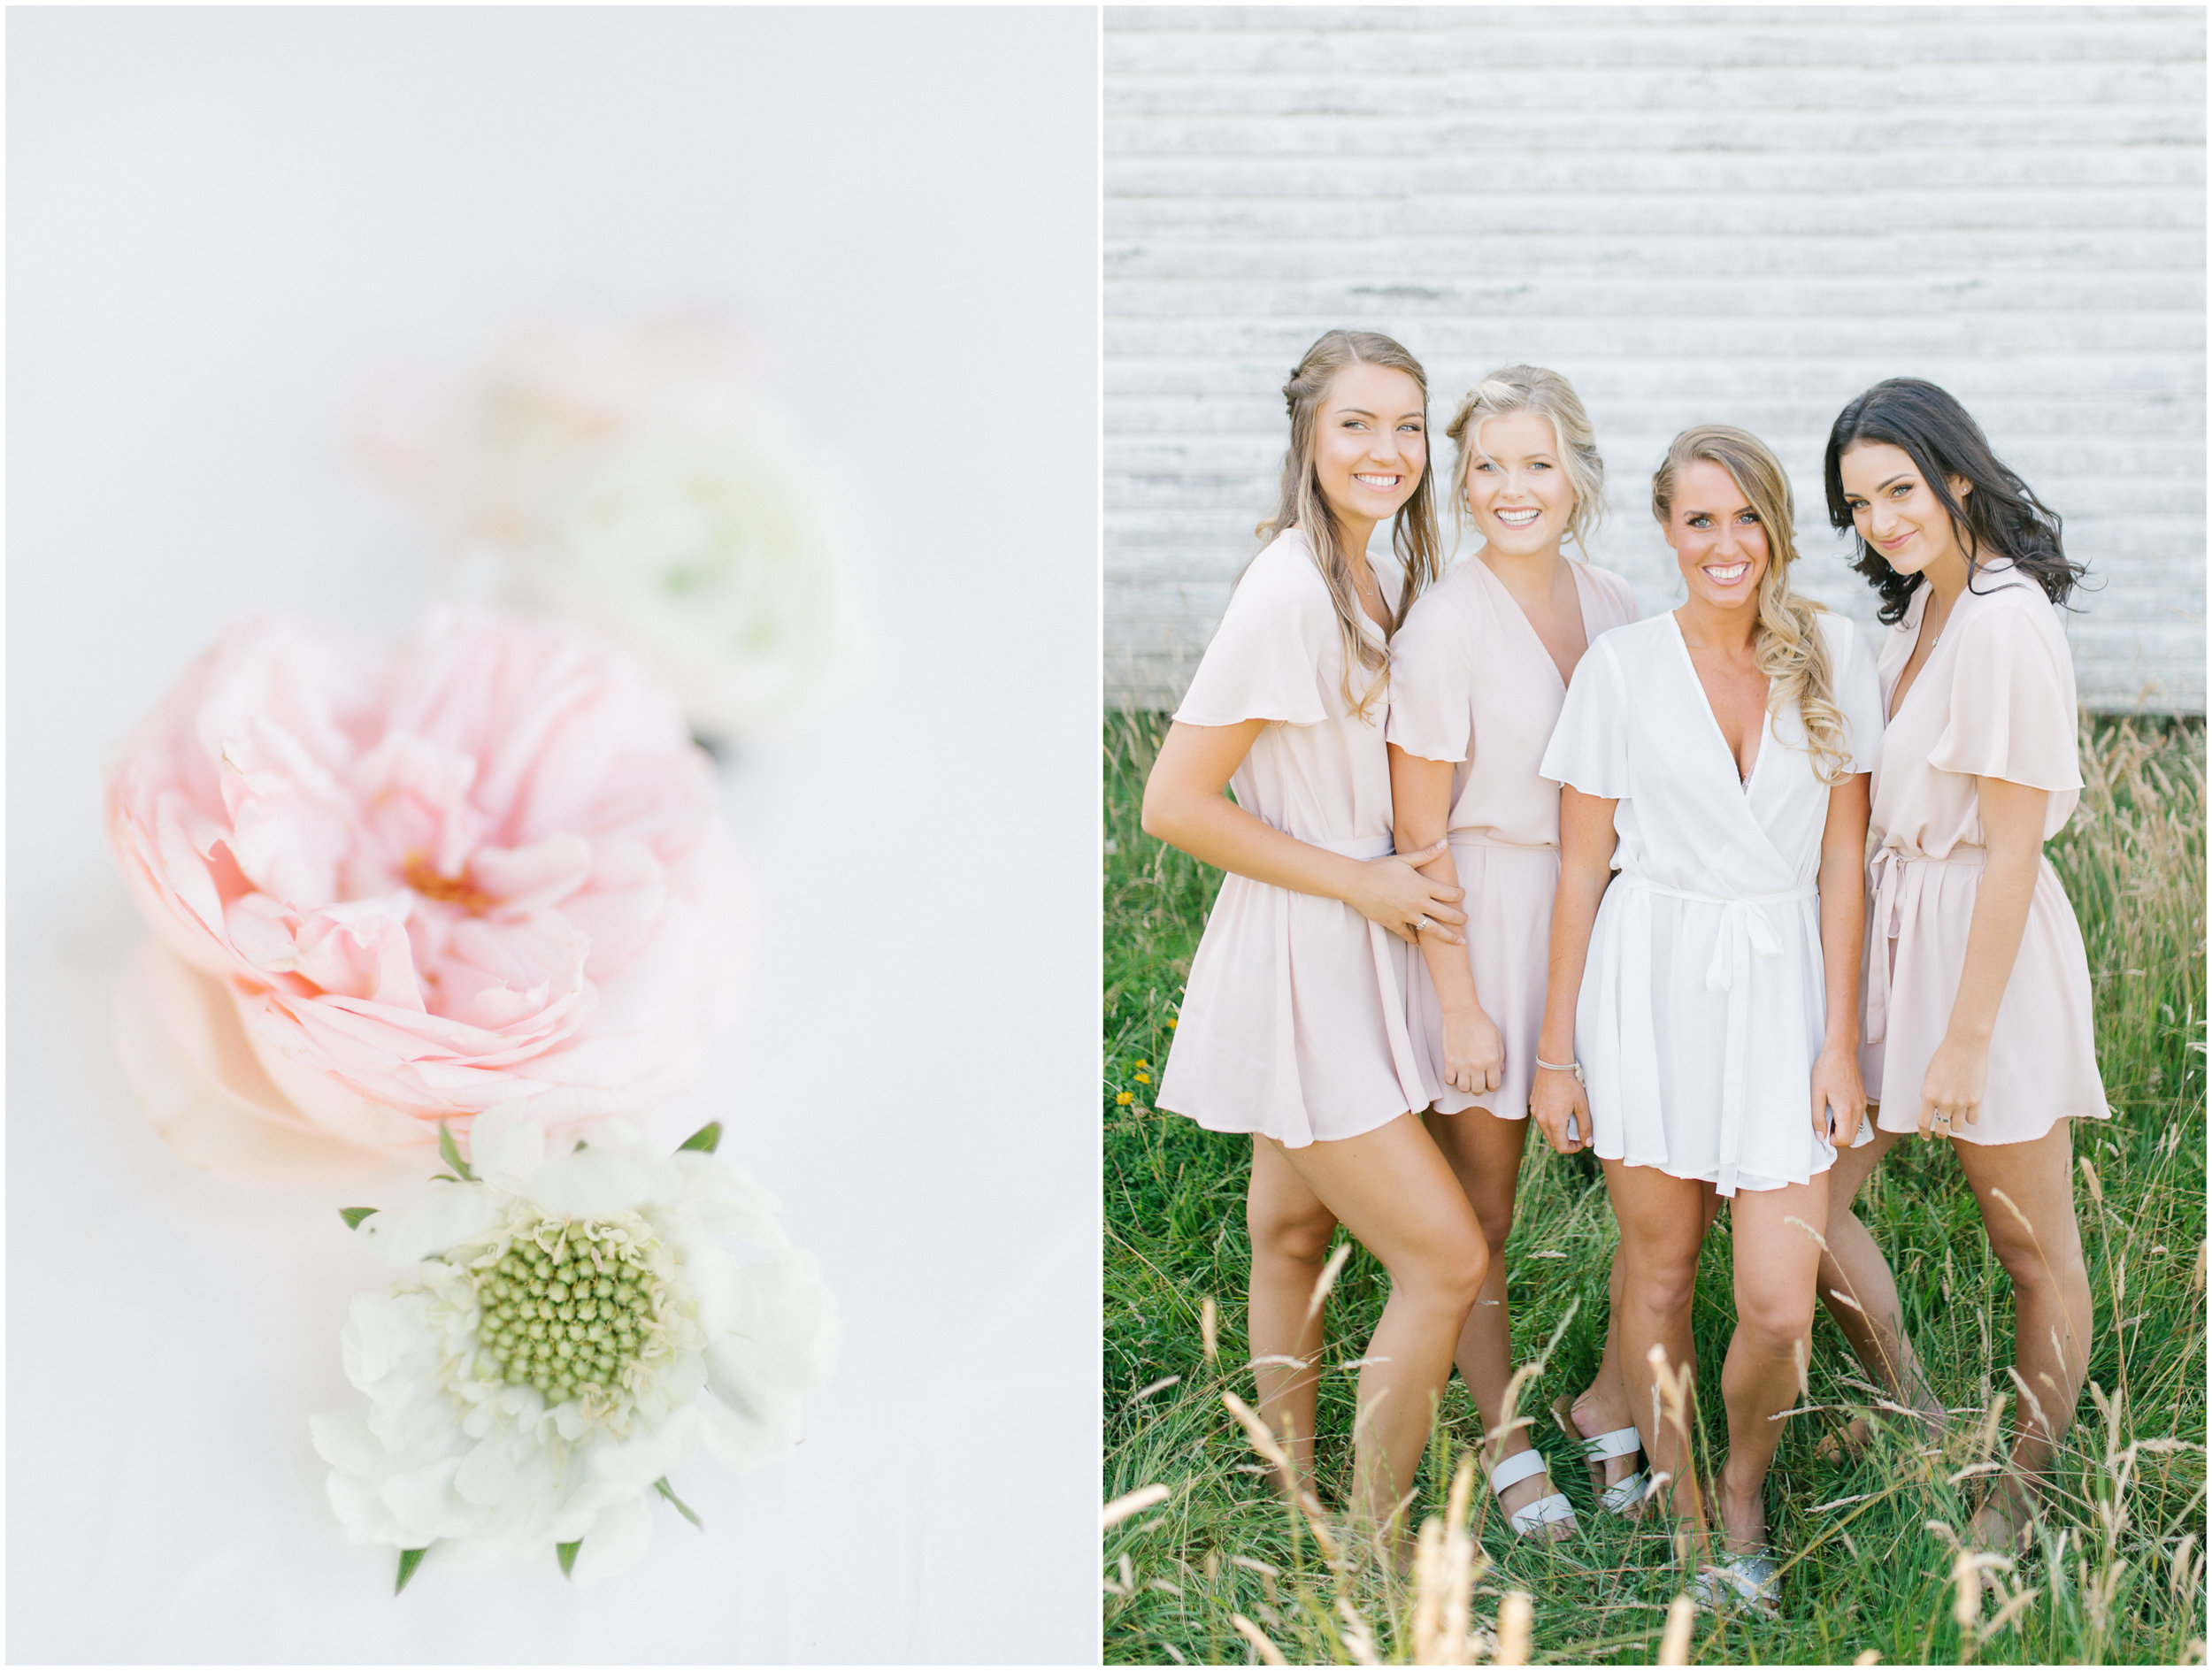 Dream Chasers Workshop | Emma Rose Company | Gorgeous Styled Shoot | Bixby + Pine | Emma Rose Company Education | Bridesmaids Getting Ready in Mumu Robes.jpg